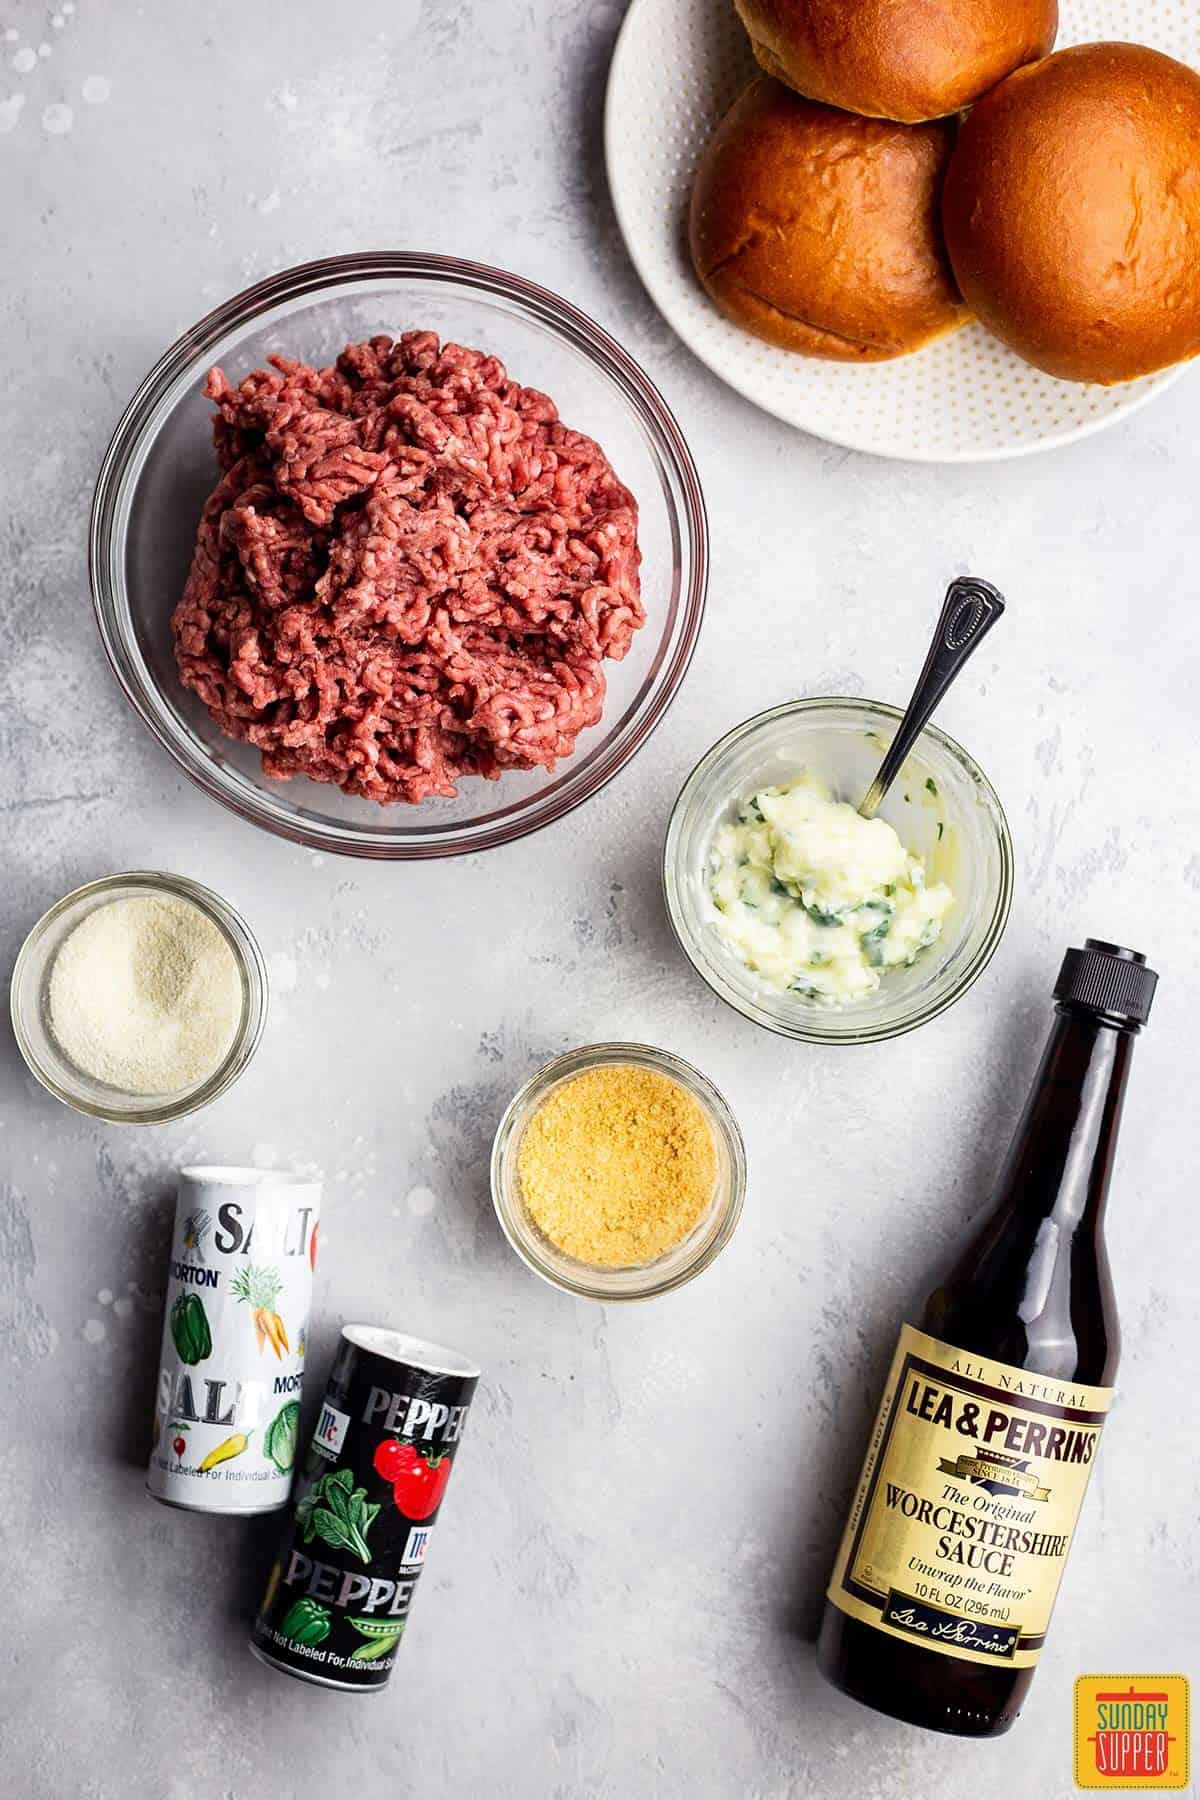 Ingredients to make an air fryer hamburger laid out on the counter